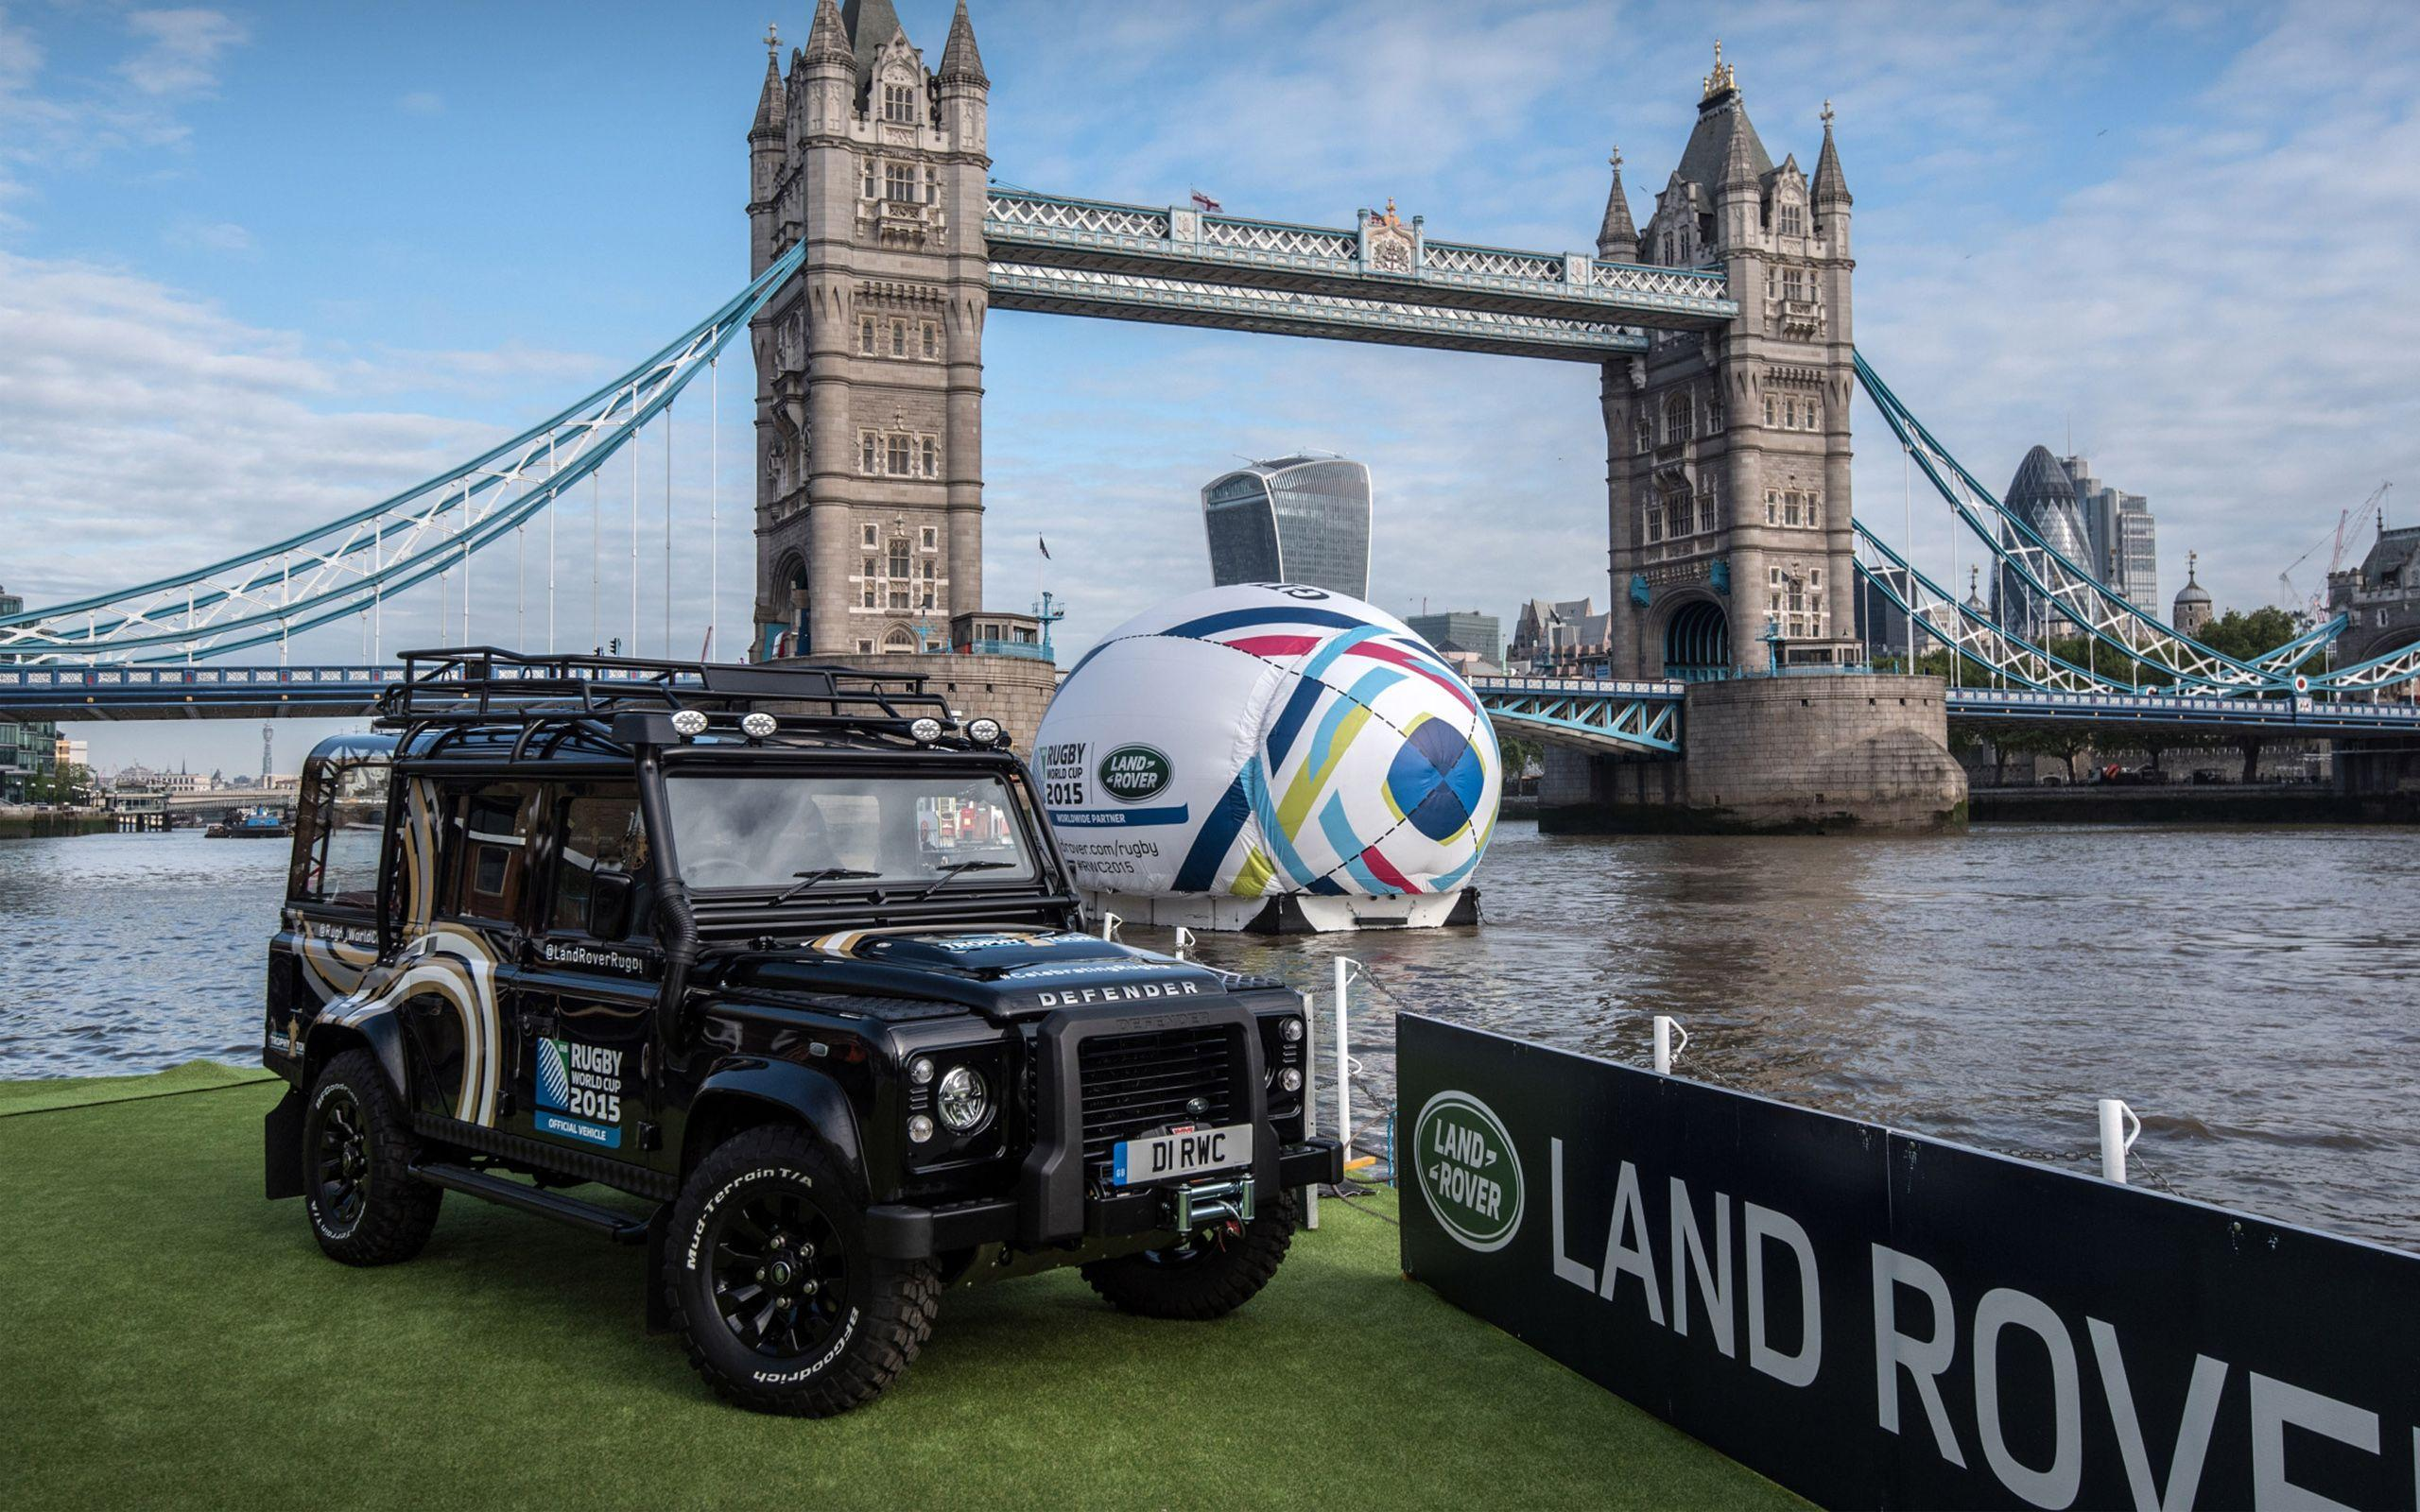 2015 Land Rover Rugby World Cup Defender Wallpapers